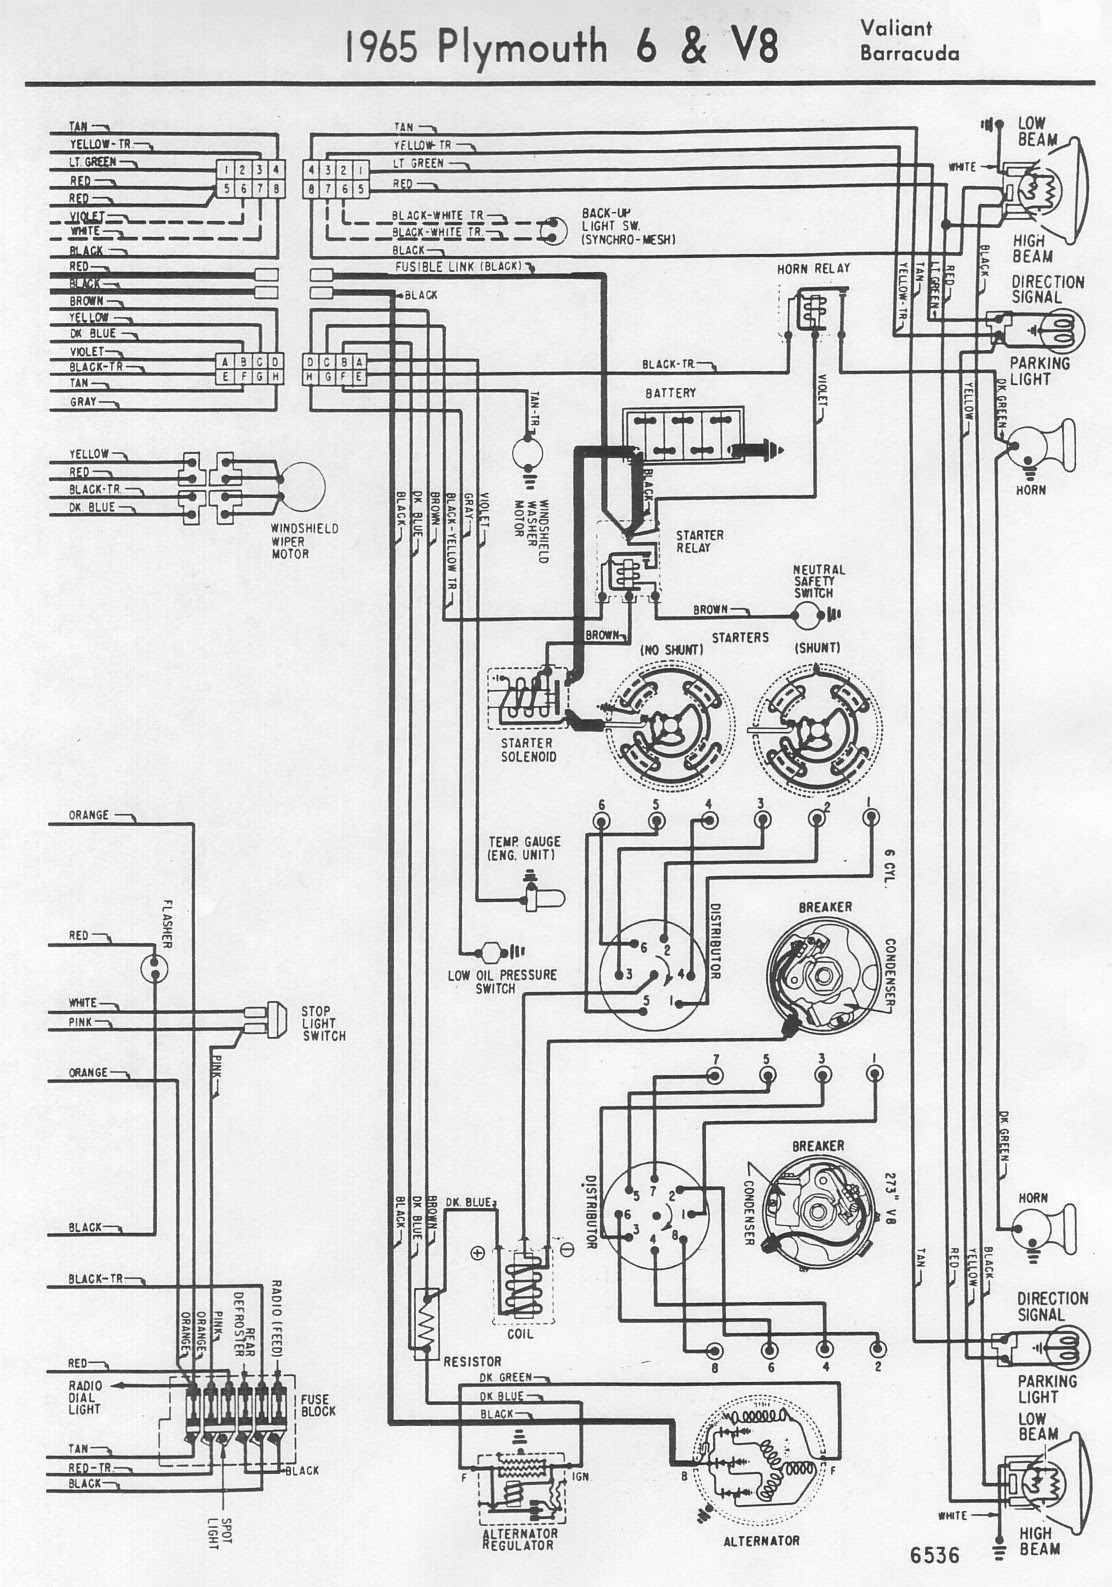 1970 Barracuda Wiring Diagram Wiring A Light Switch And Schematic For Wiring Diagram Schematics